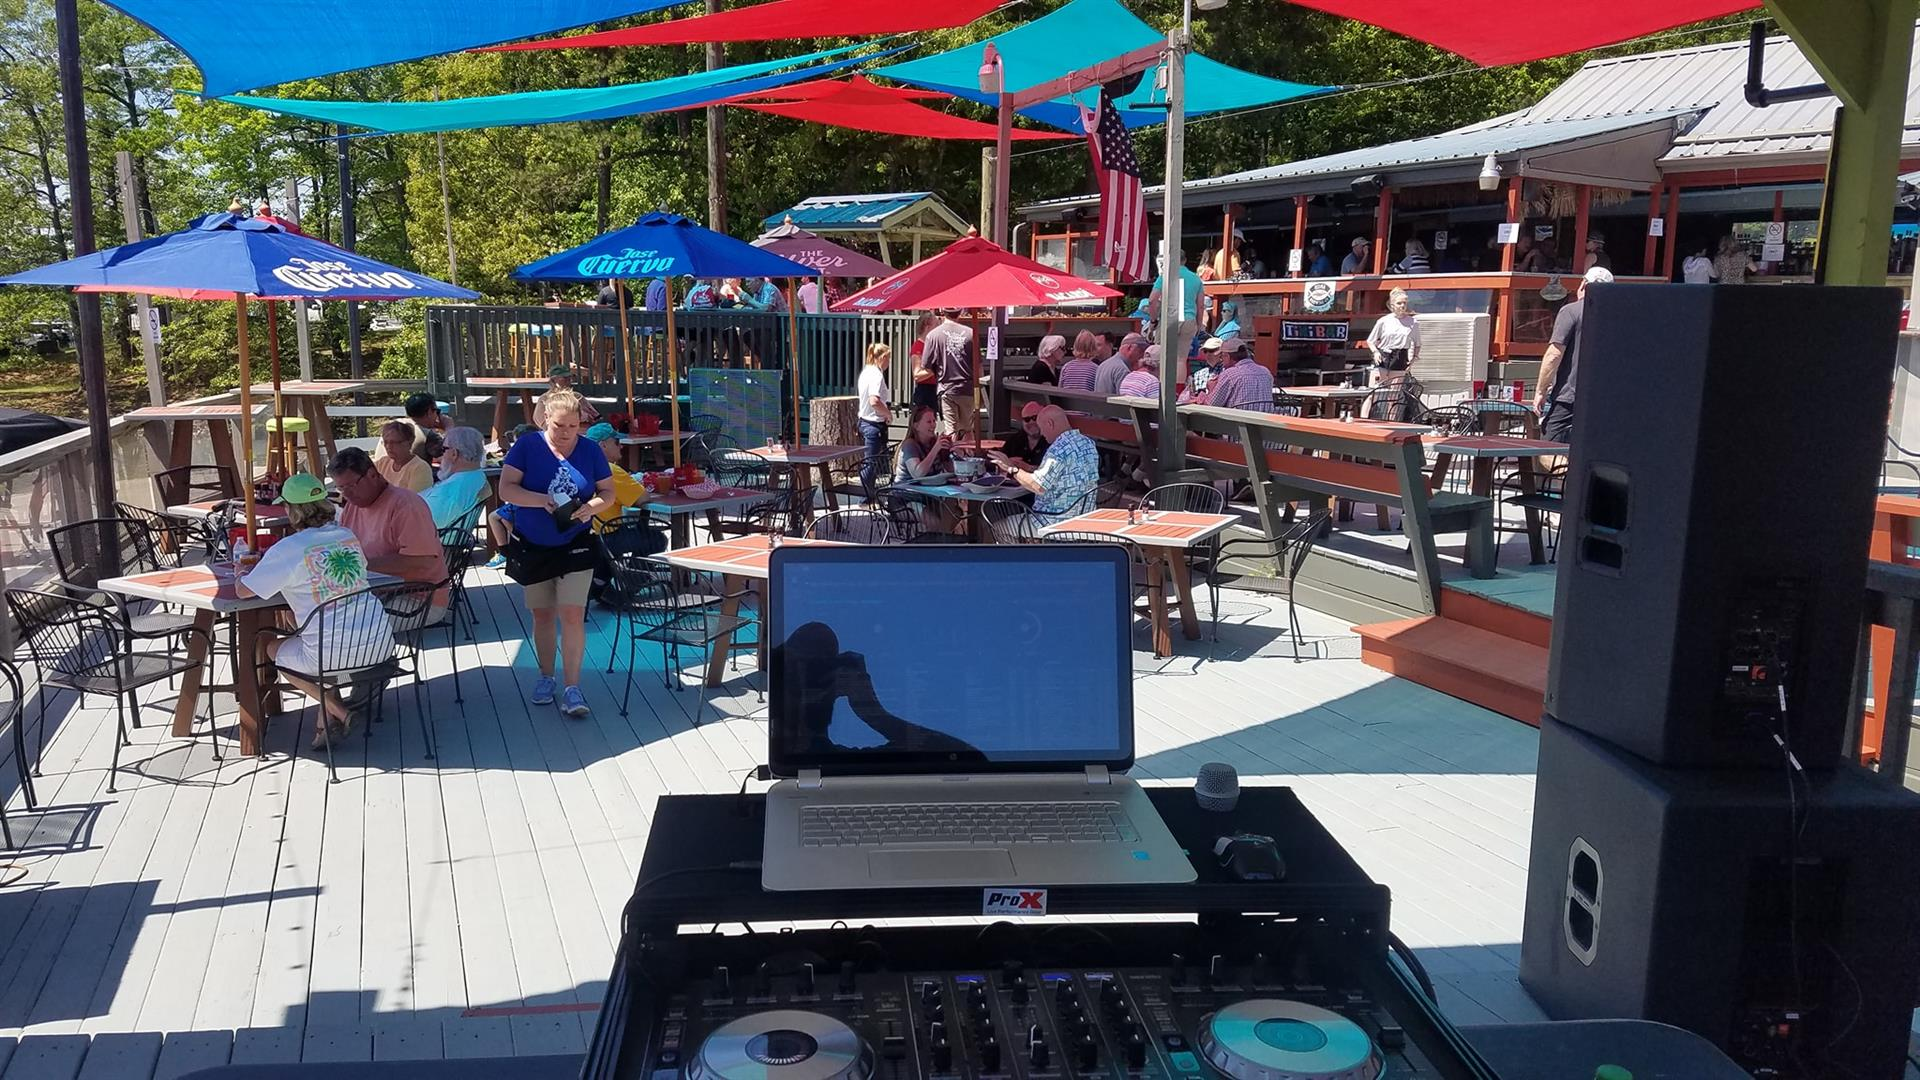 View of a DJ setup on a deck with people sitting at tables under umbrellas